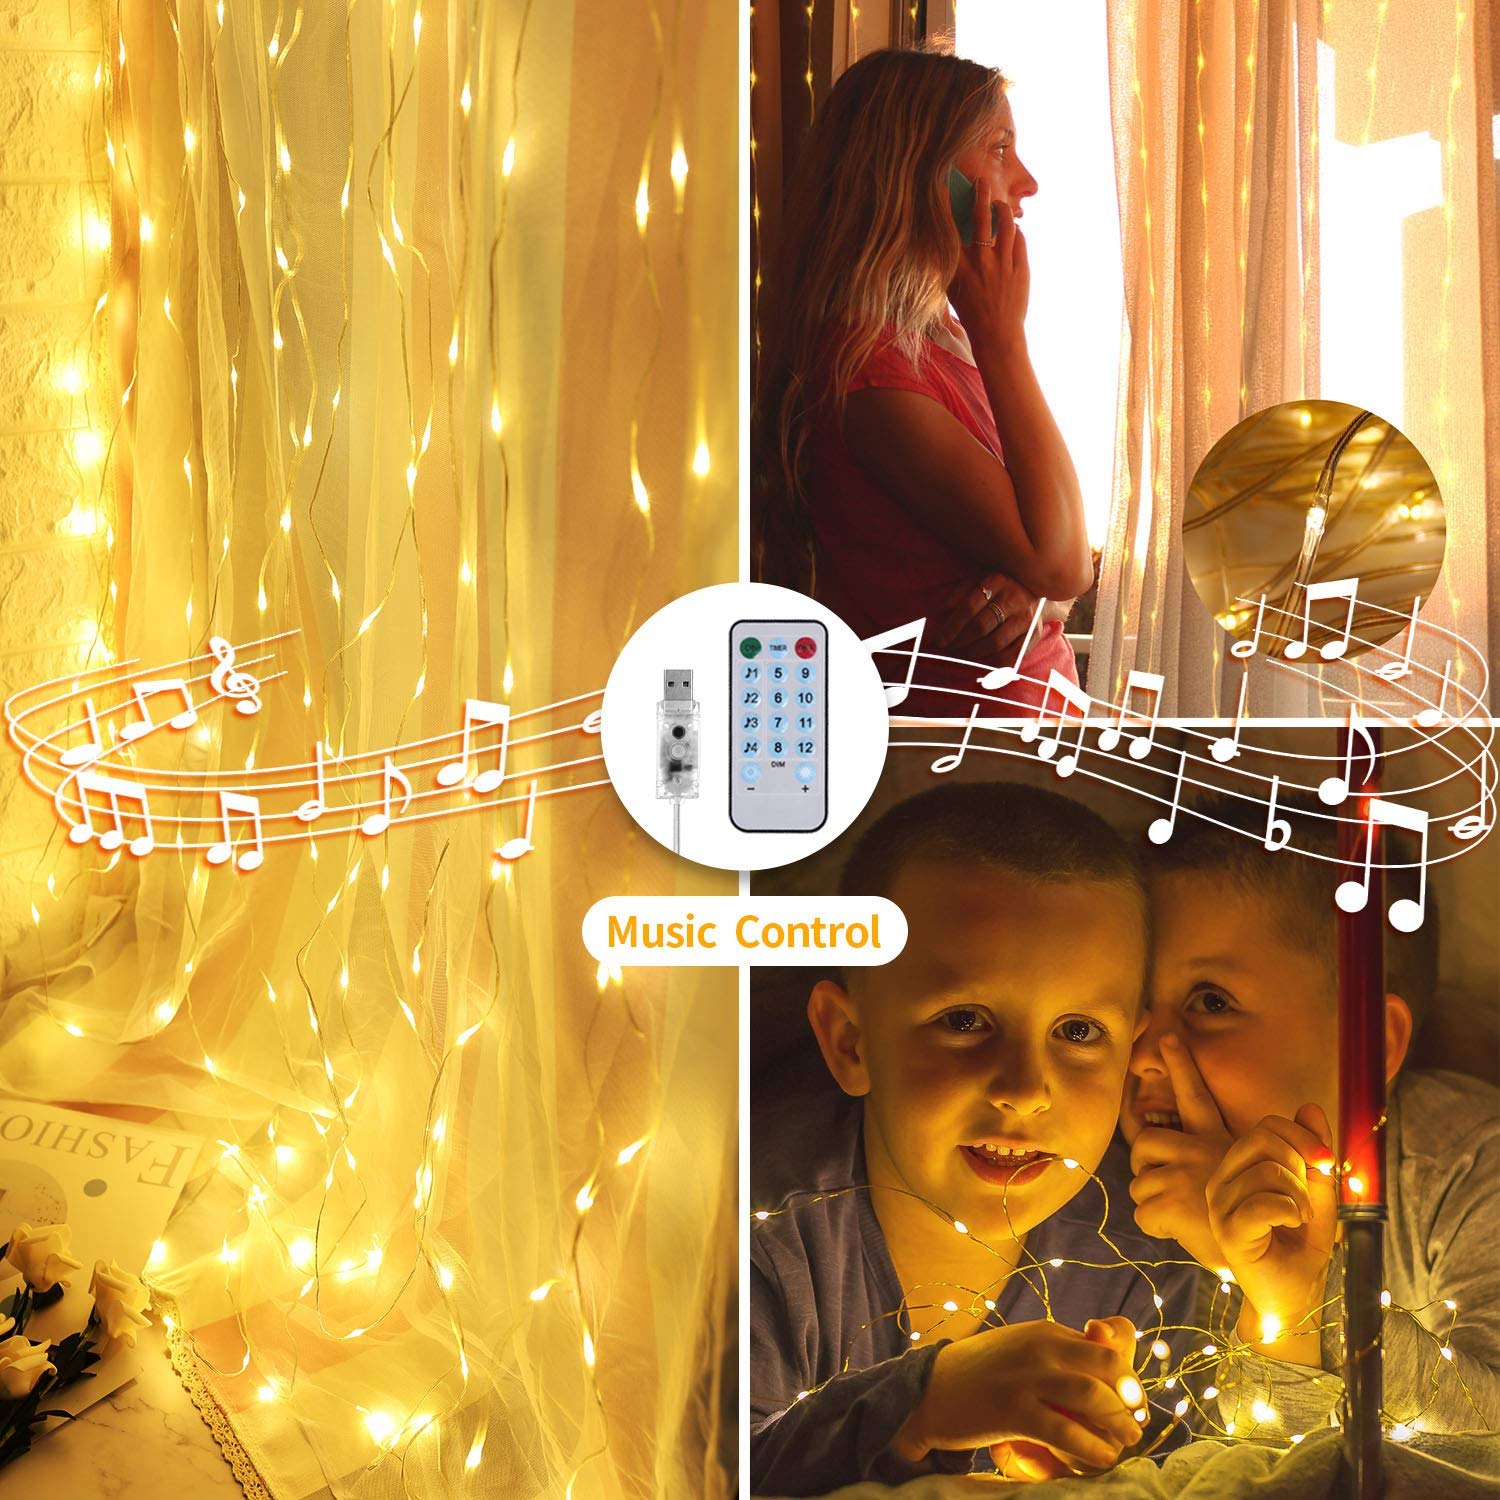 OUSFOT LED Curtain Lights Sound Activated 300 LED Curtain String Lights 4 Music Modes & 8 Lighting Modes